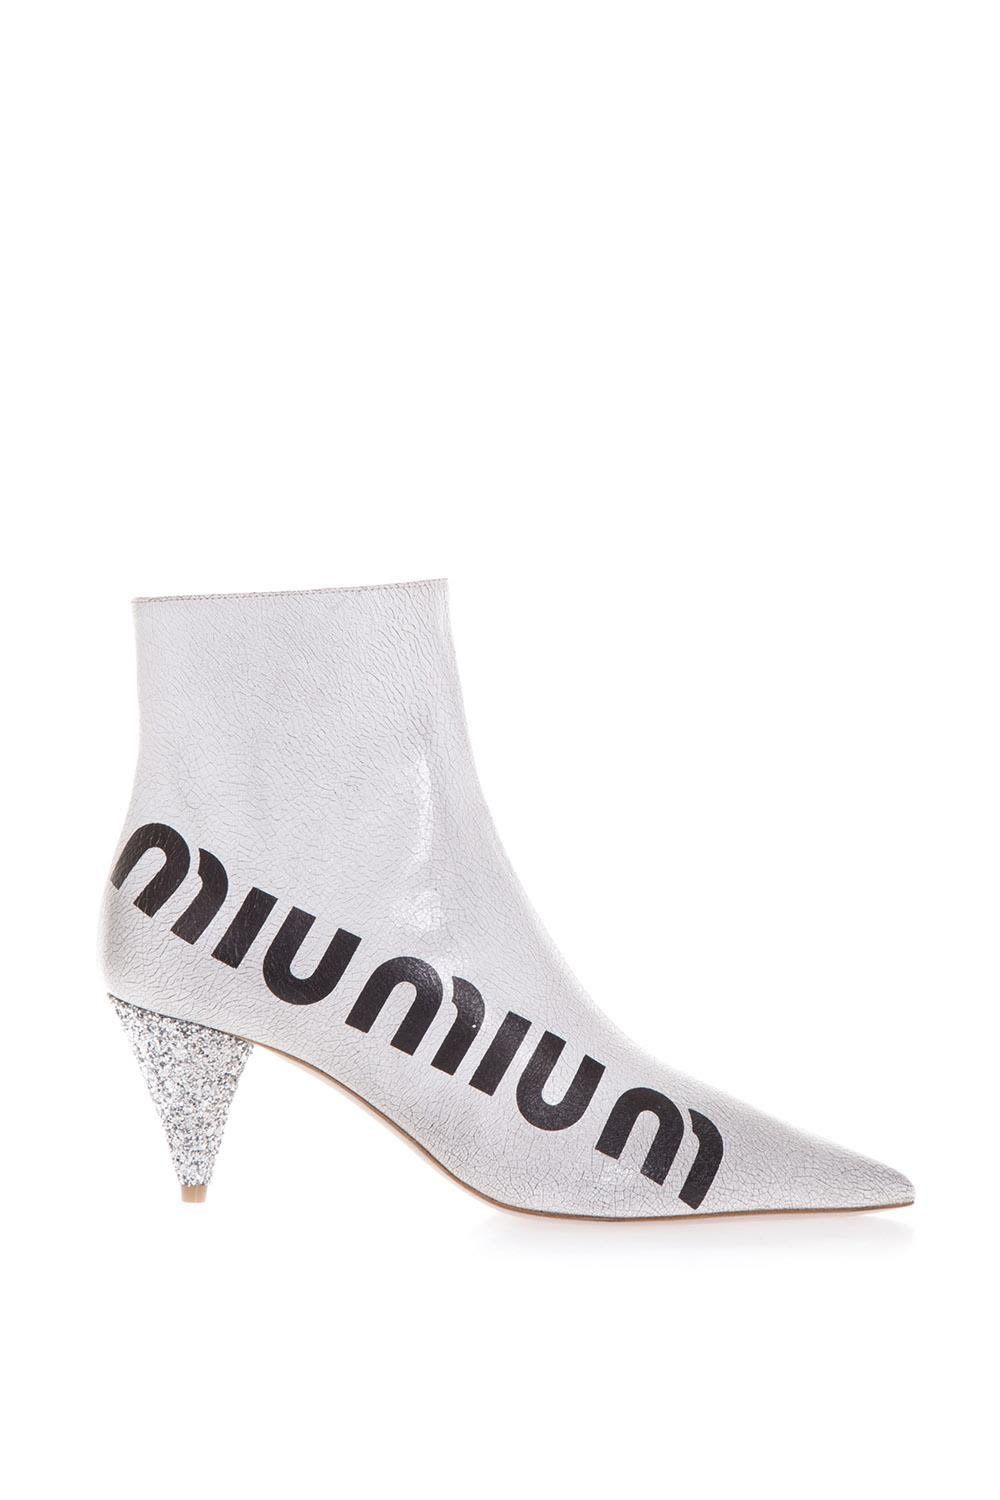 miu miu -  White  Cracked Boots In Leather